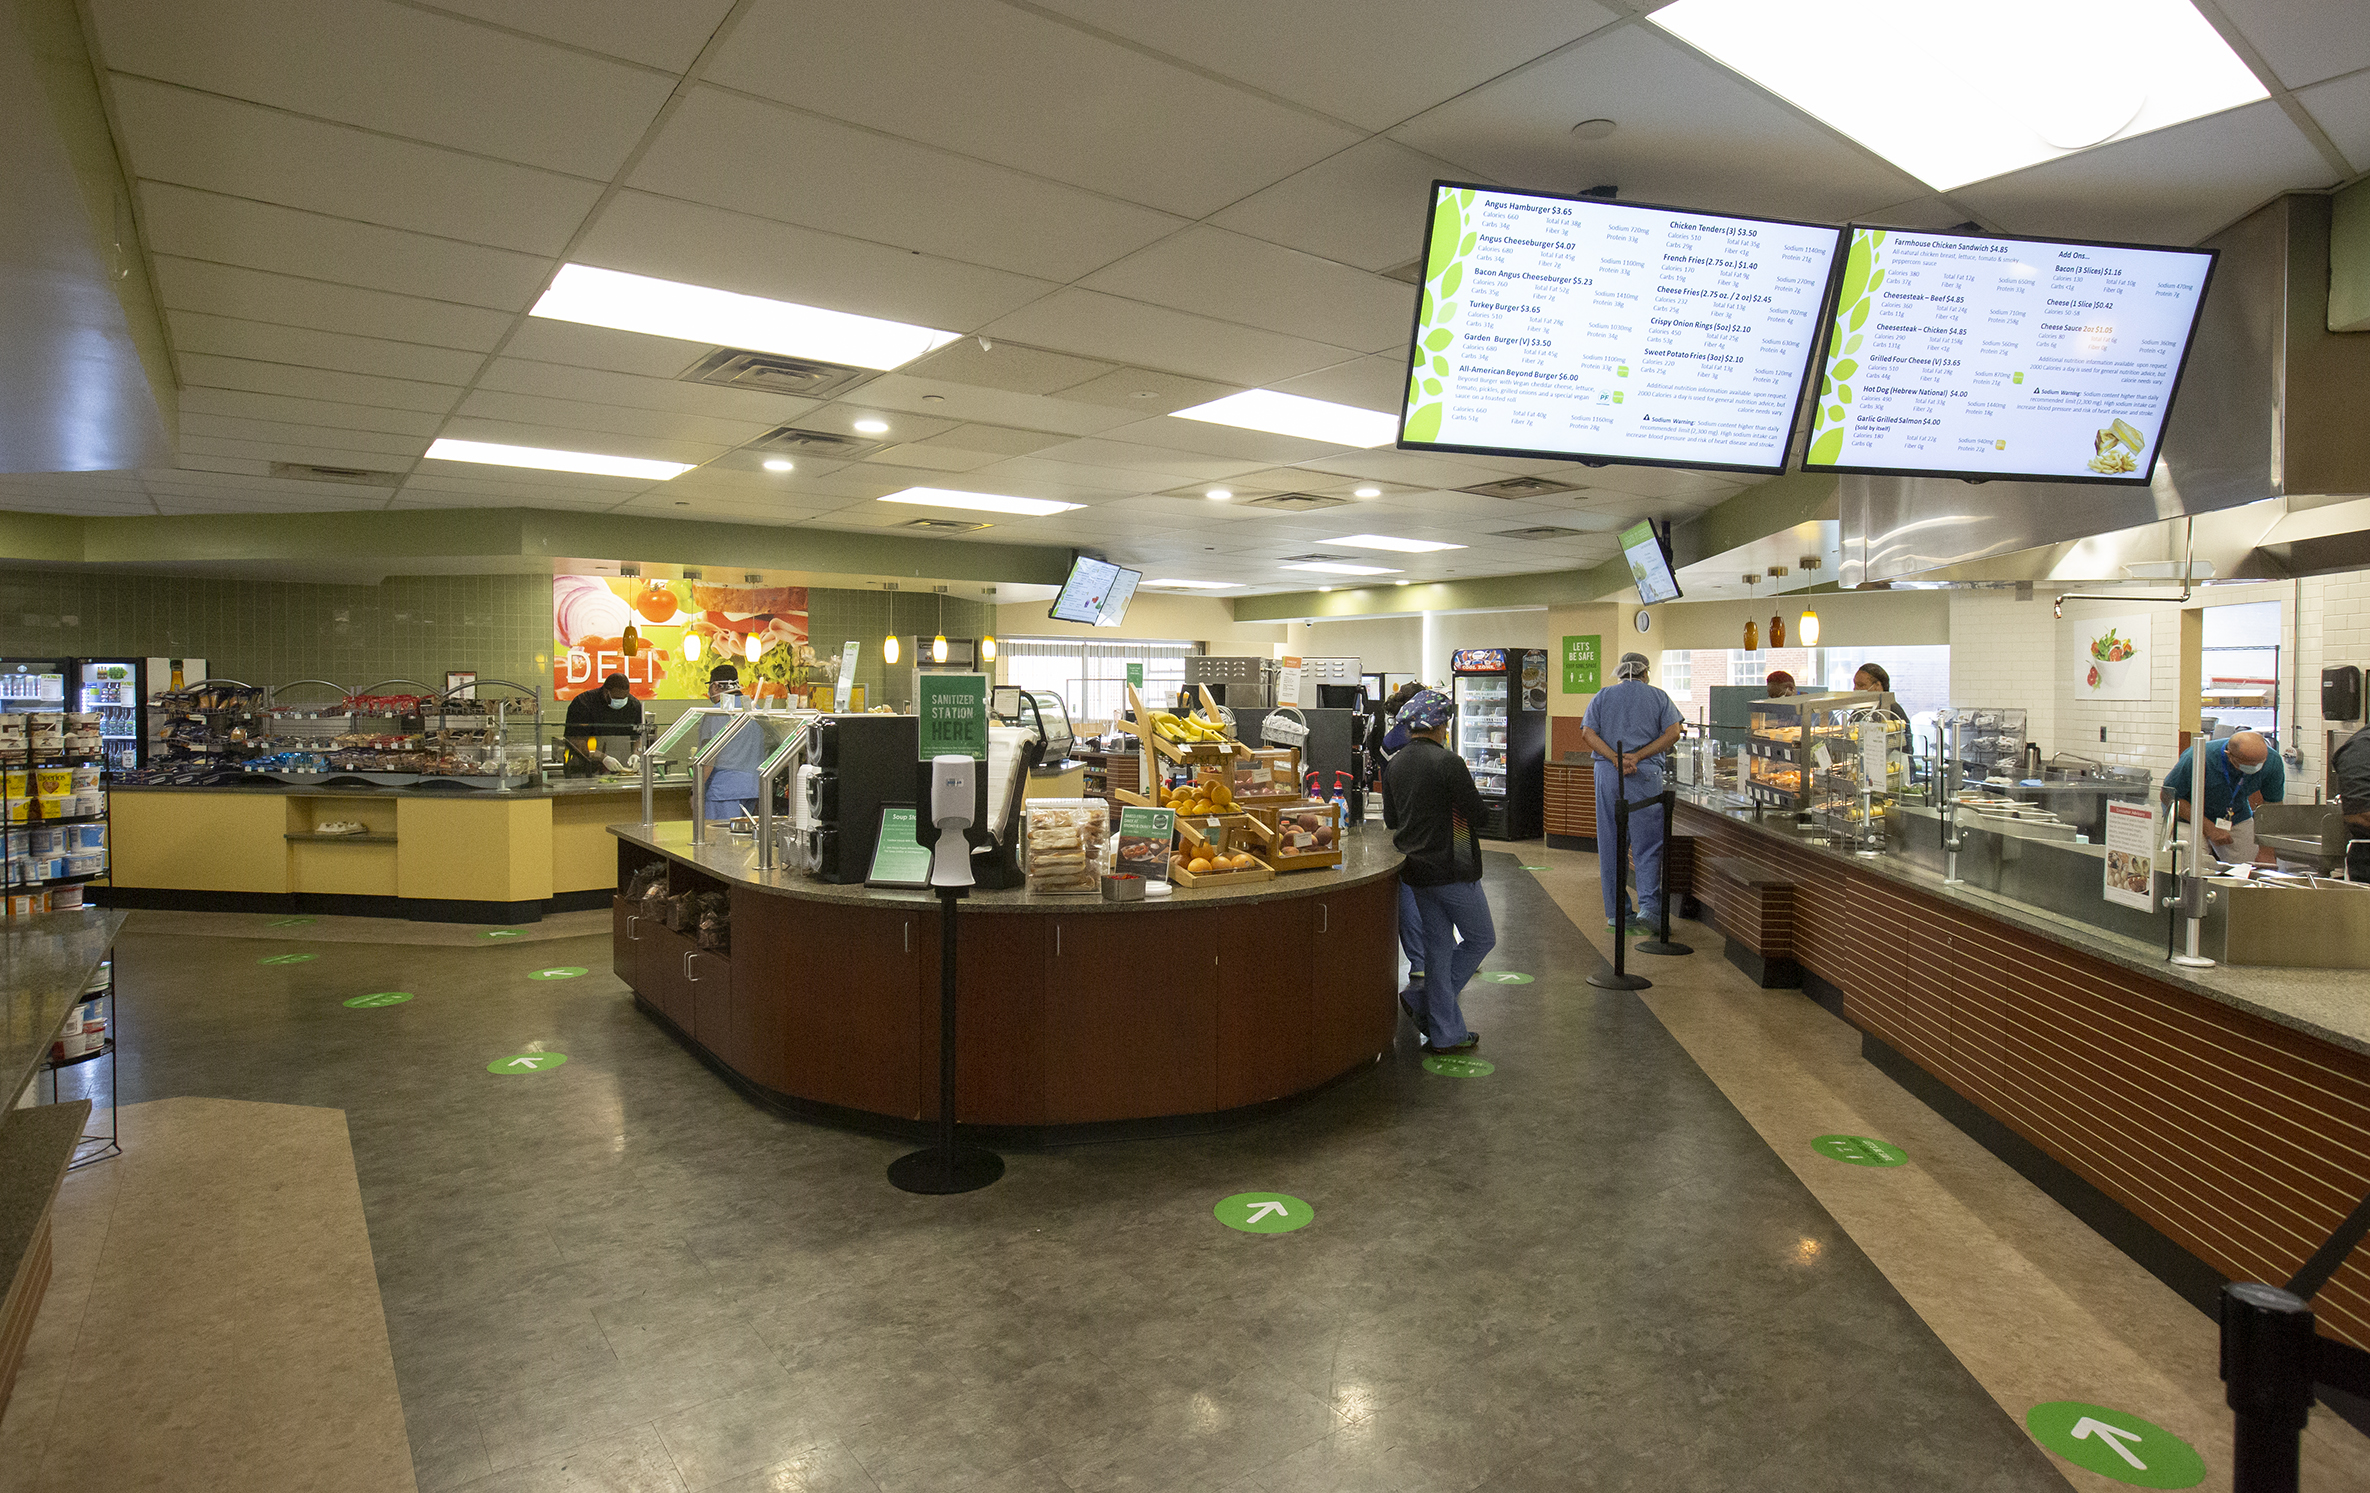 image of the cafeteria